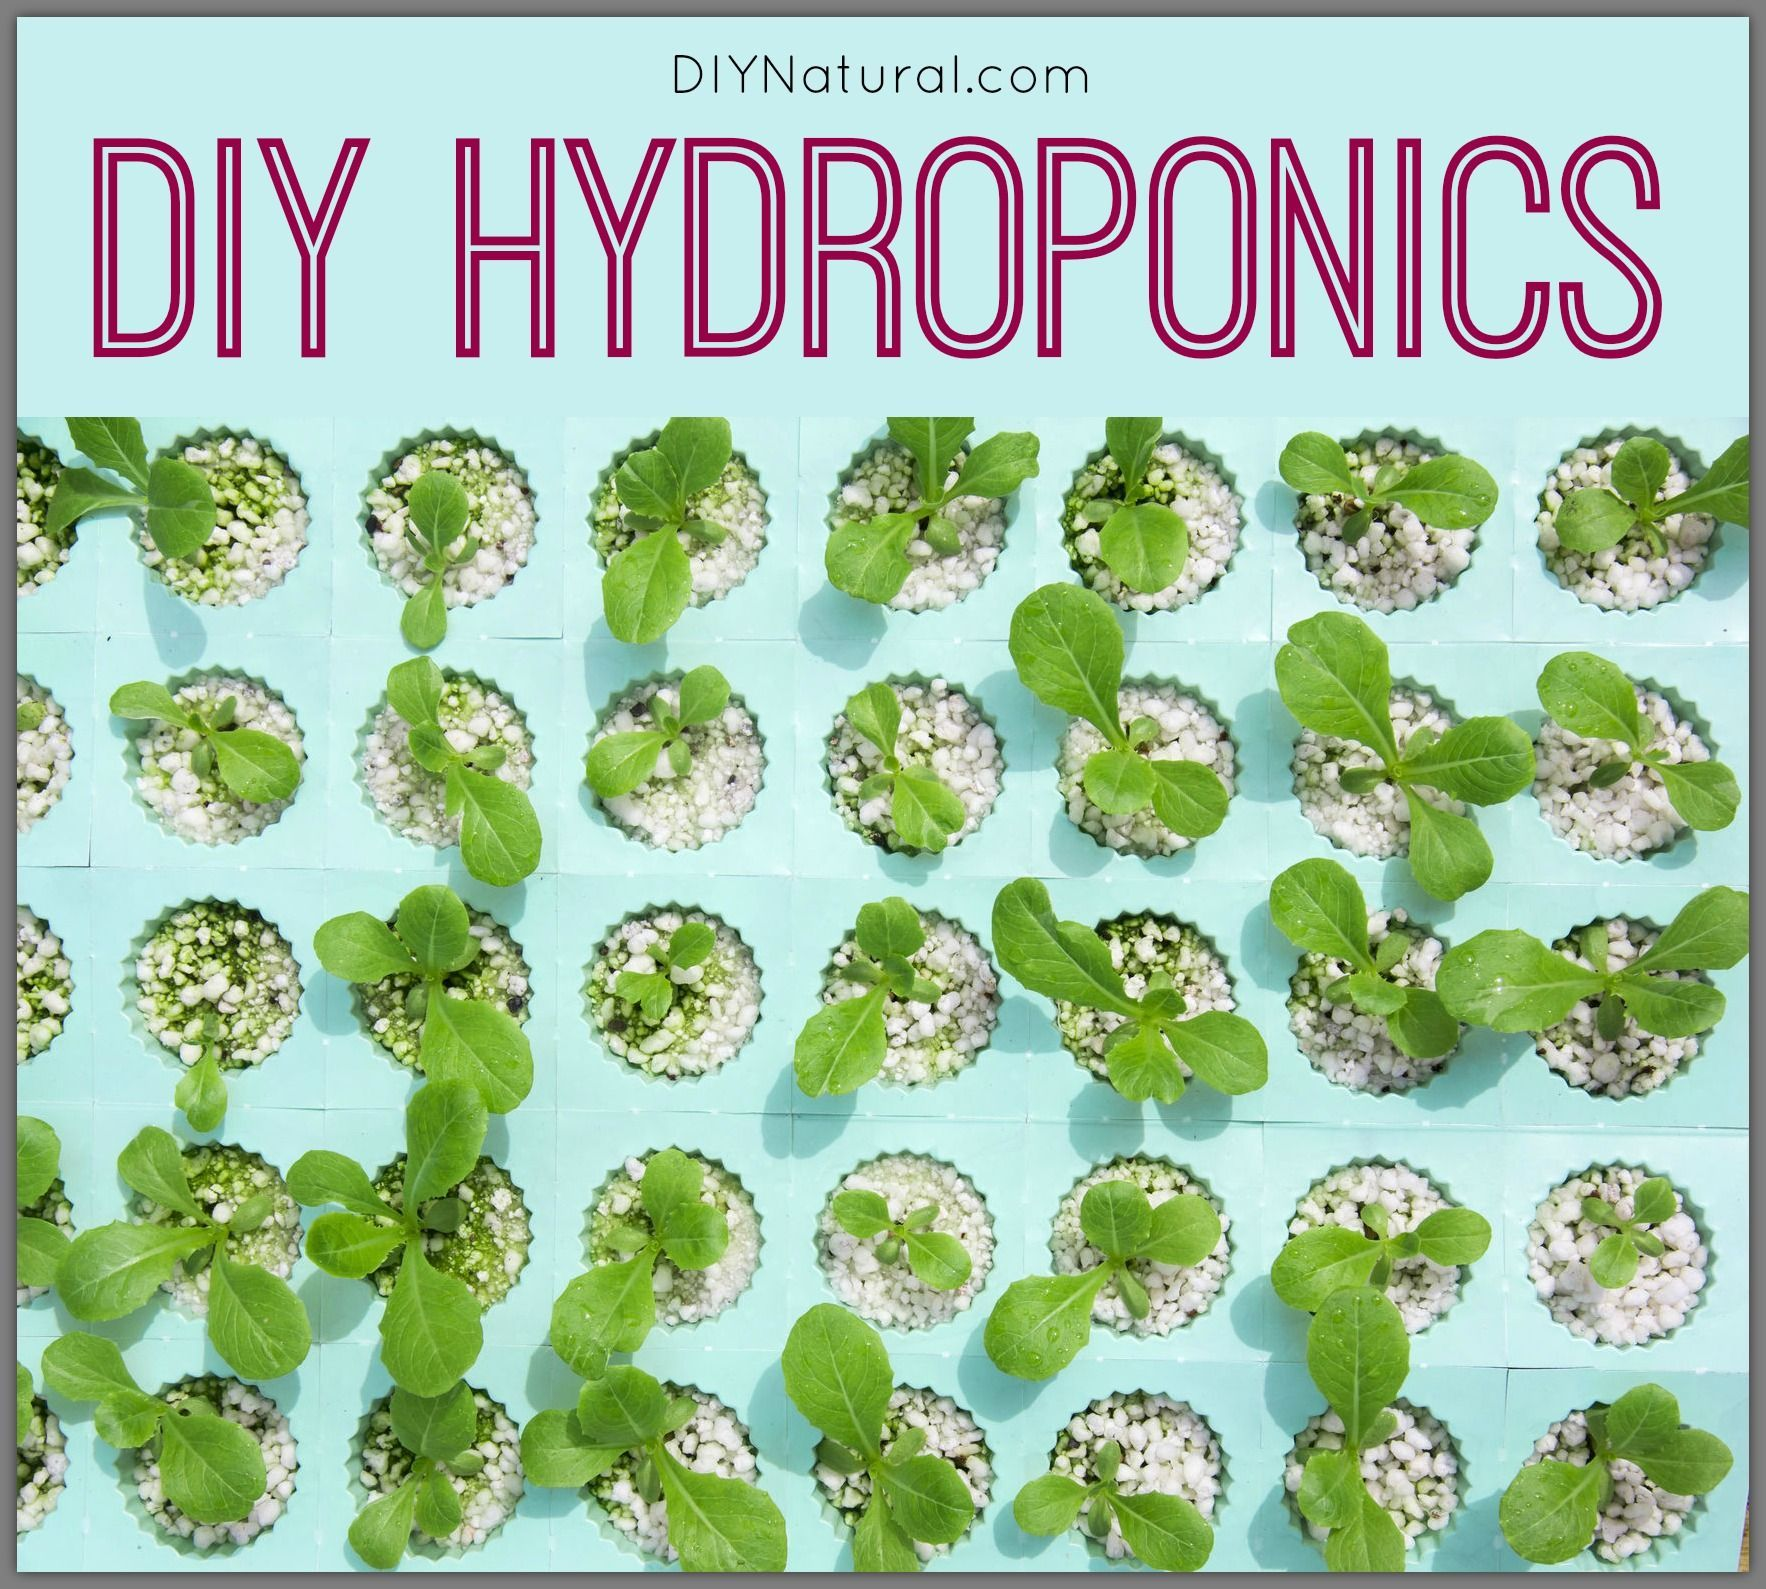 Diy Hydroponics Allow For Simple Inexpensive Gardening Systems That Work Even When Temperatures Are